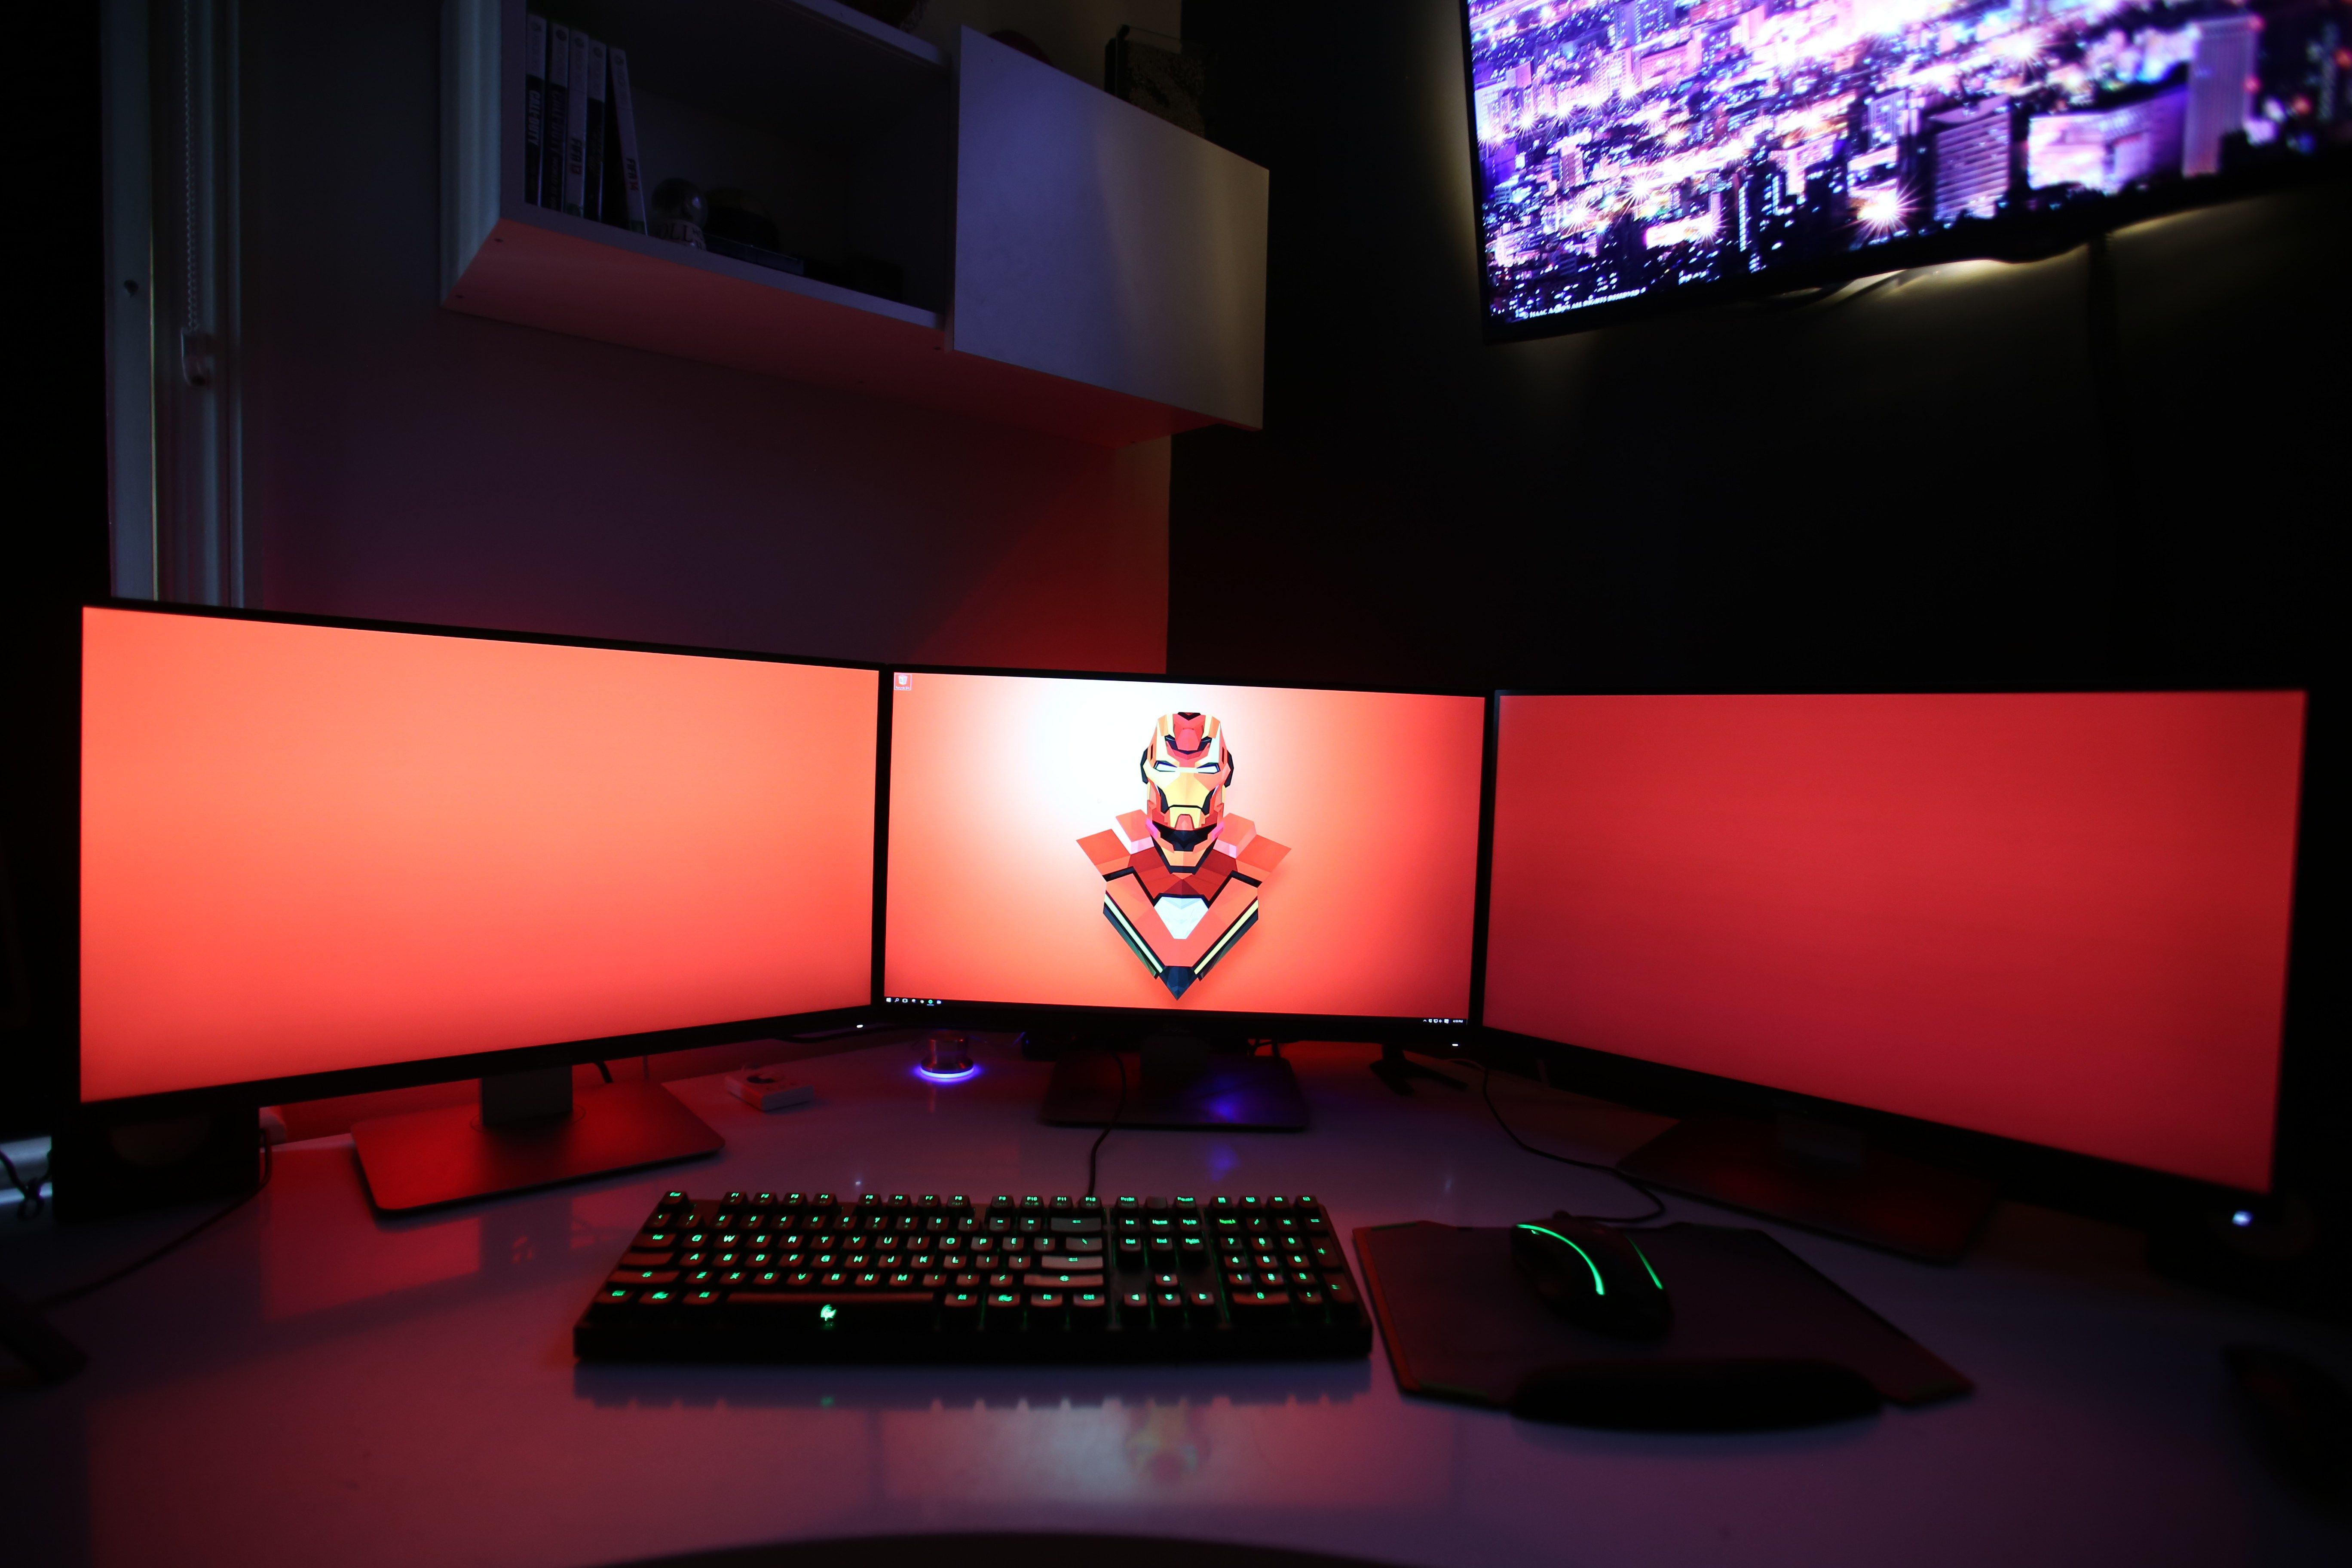 Triple monitor gaming setup k supreme setups gaming desks